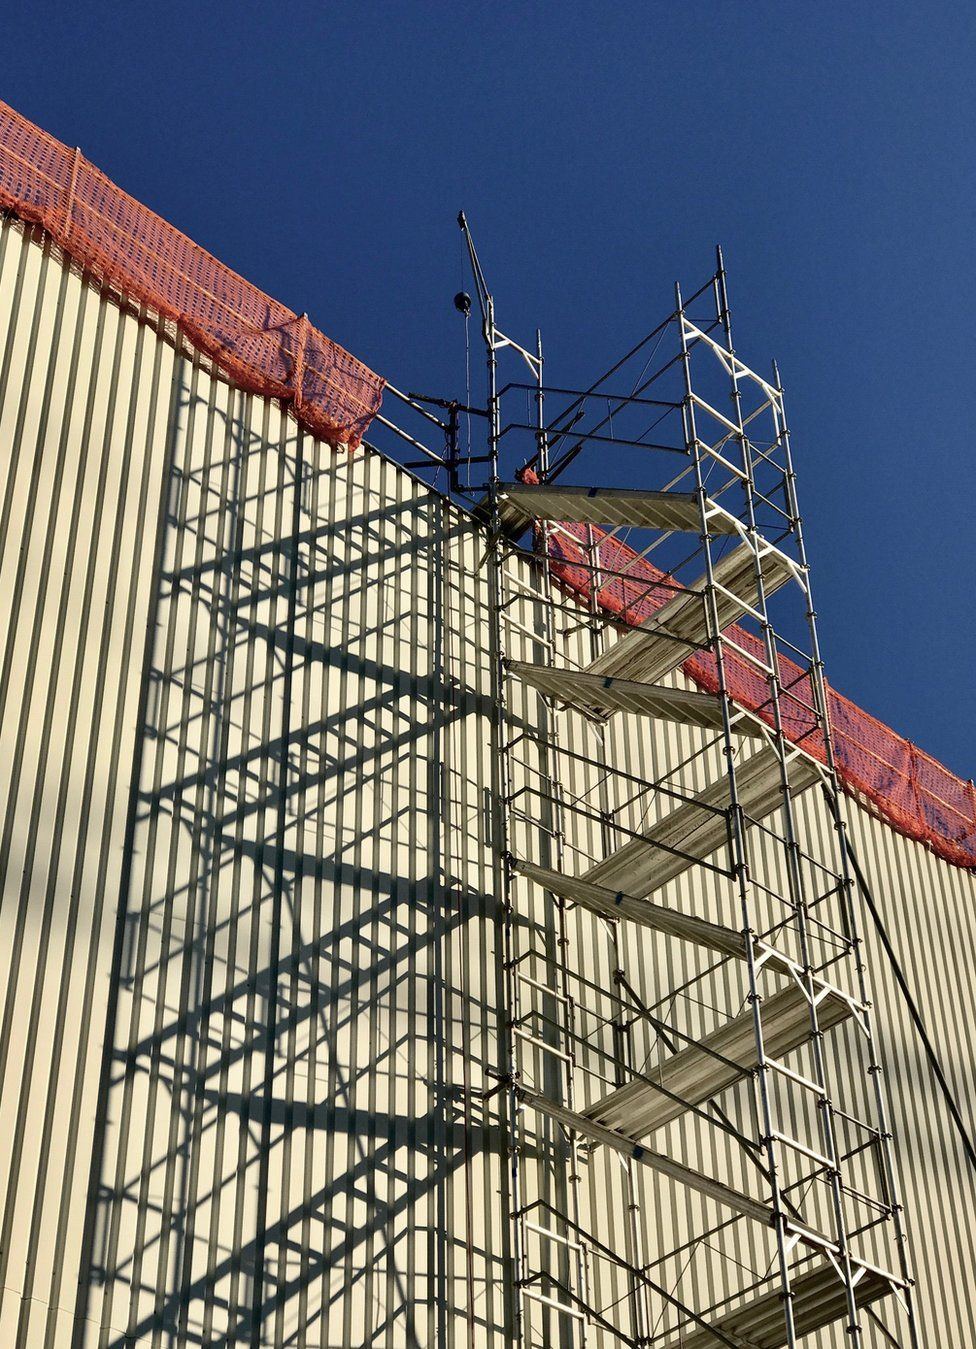 Scaffolding rises up along the side of a building and is framed against a blue sky